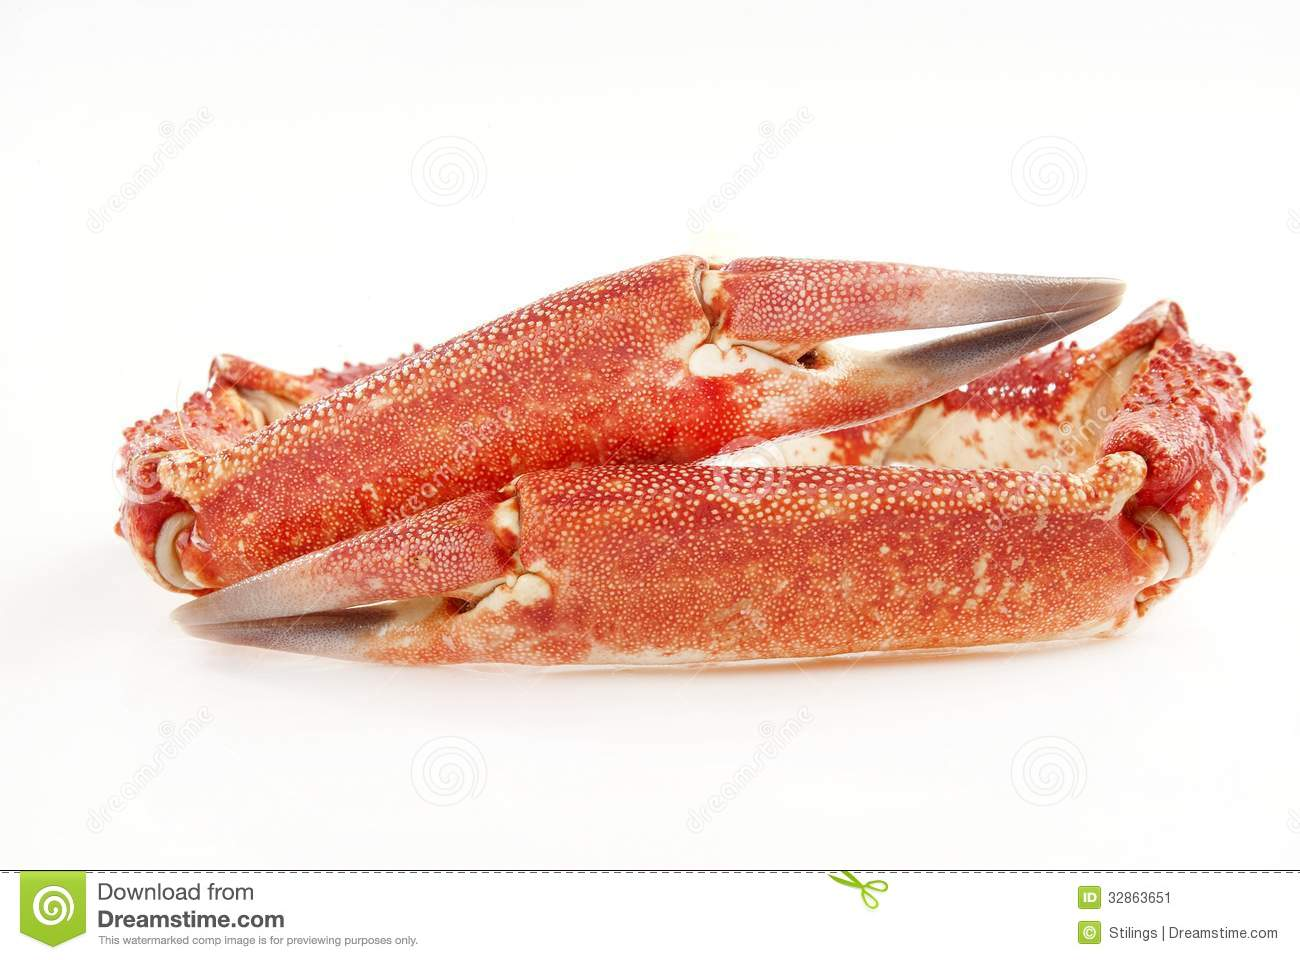 how to eat crab claws